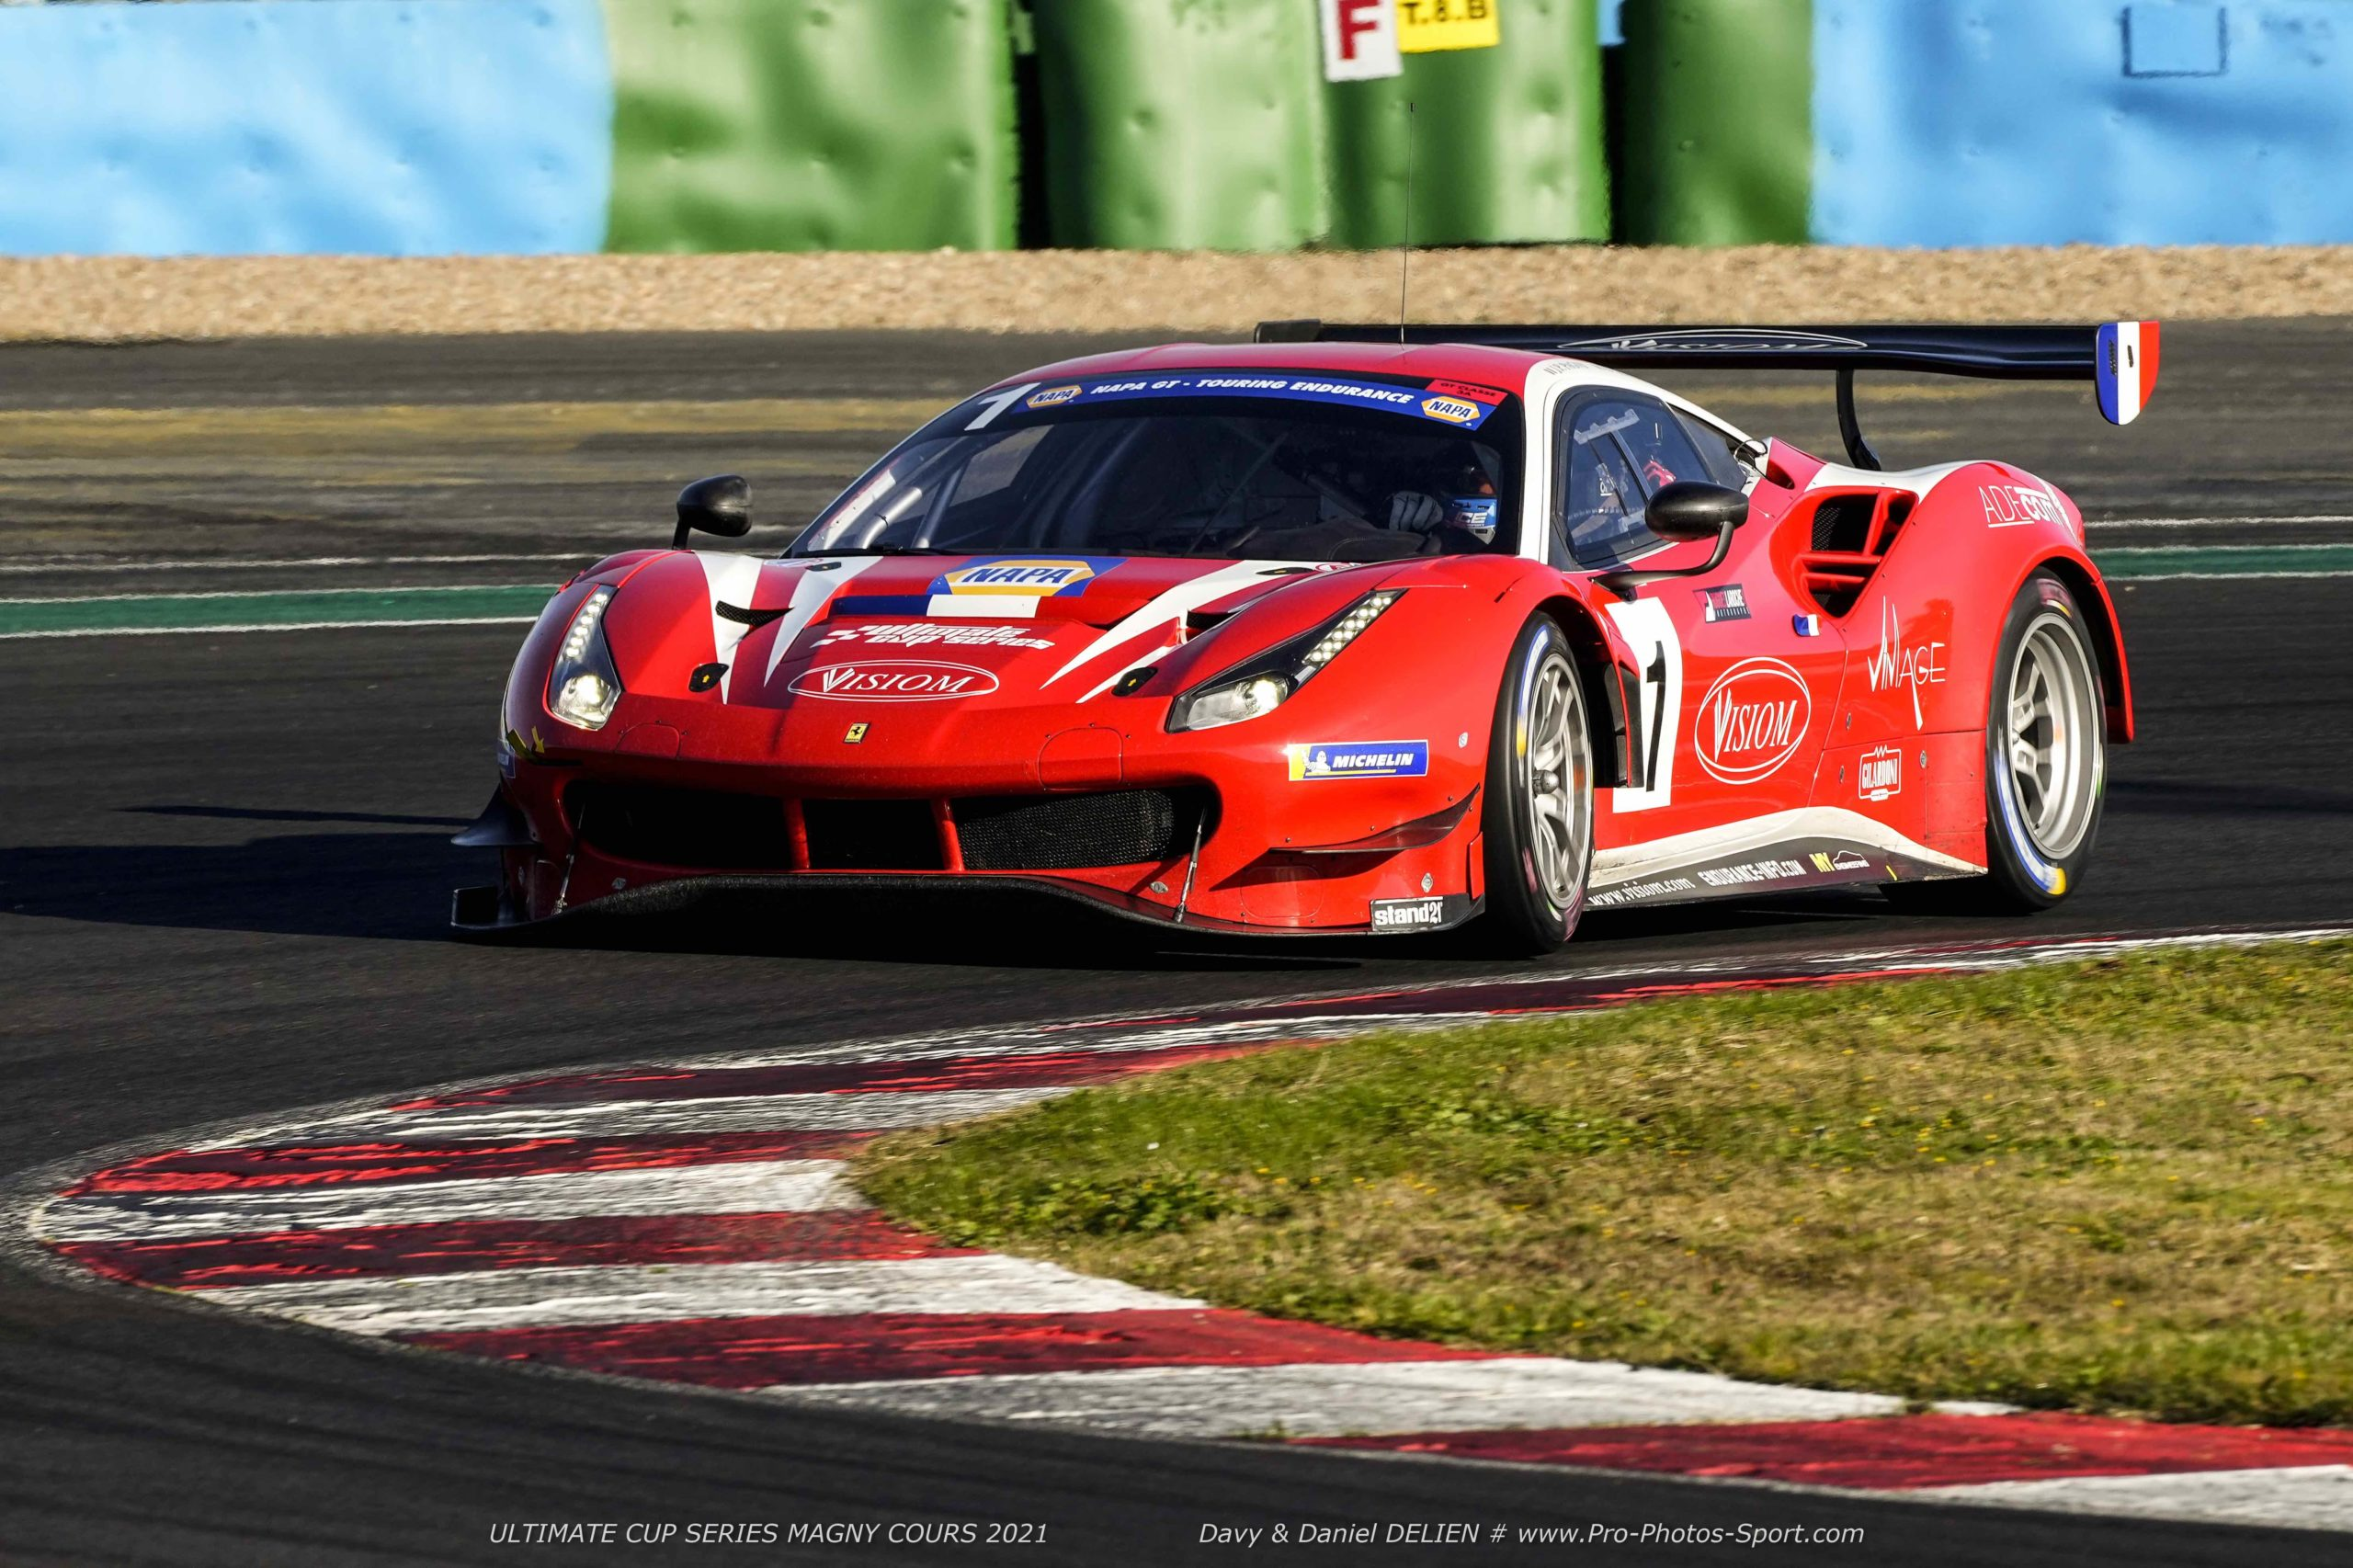 Ultimate Cup Series – Visiom Ferrari fourth at Magny-Cours